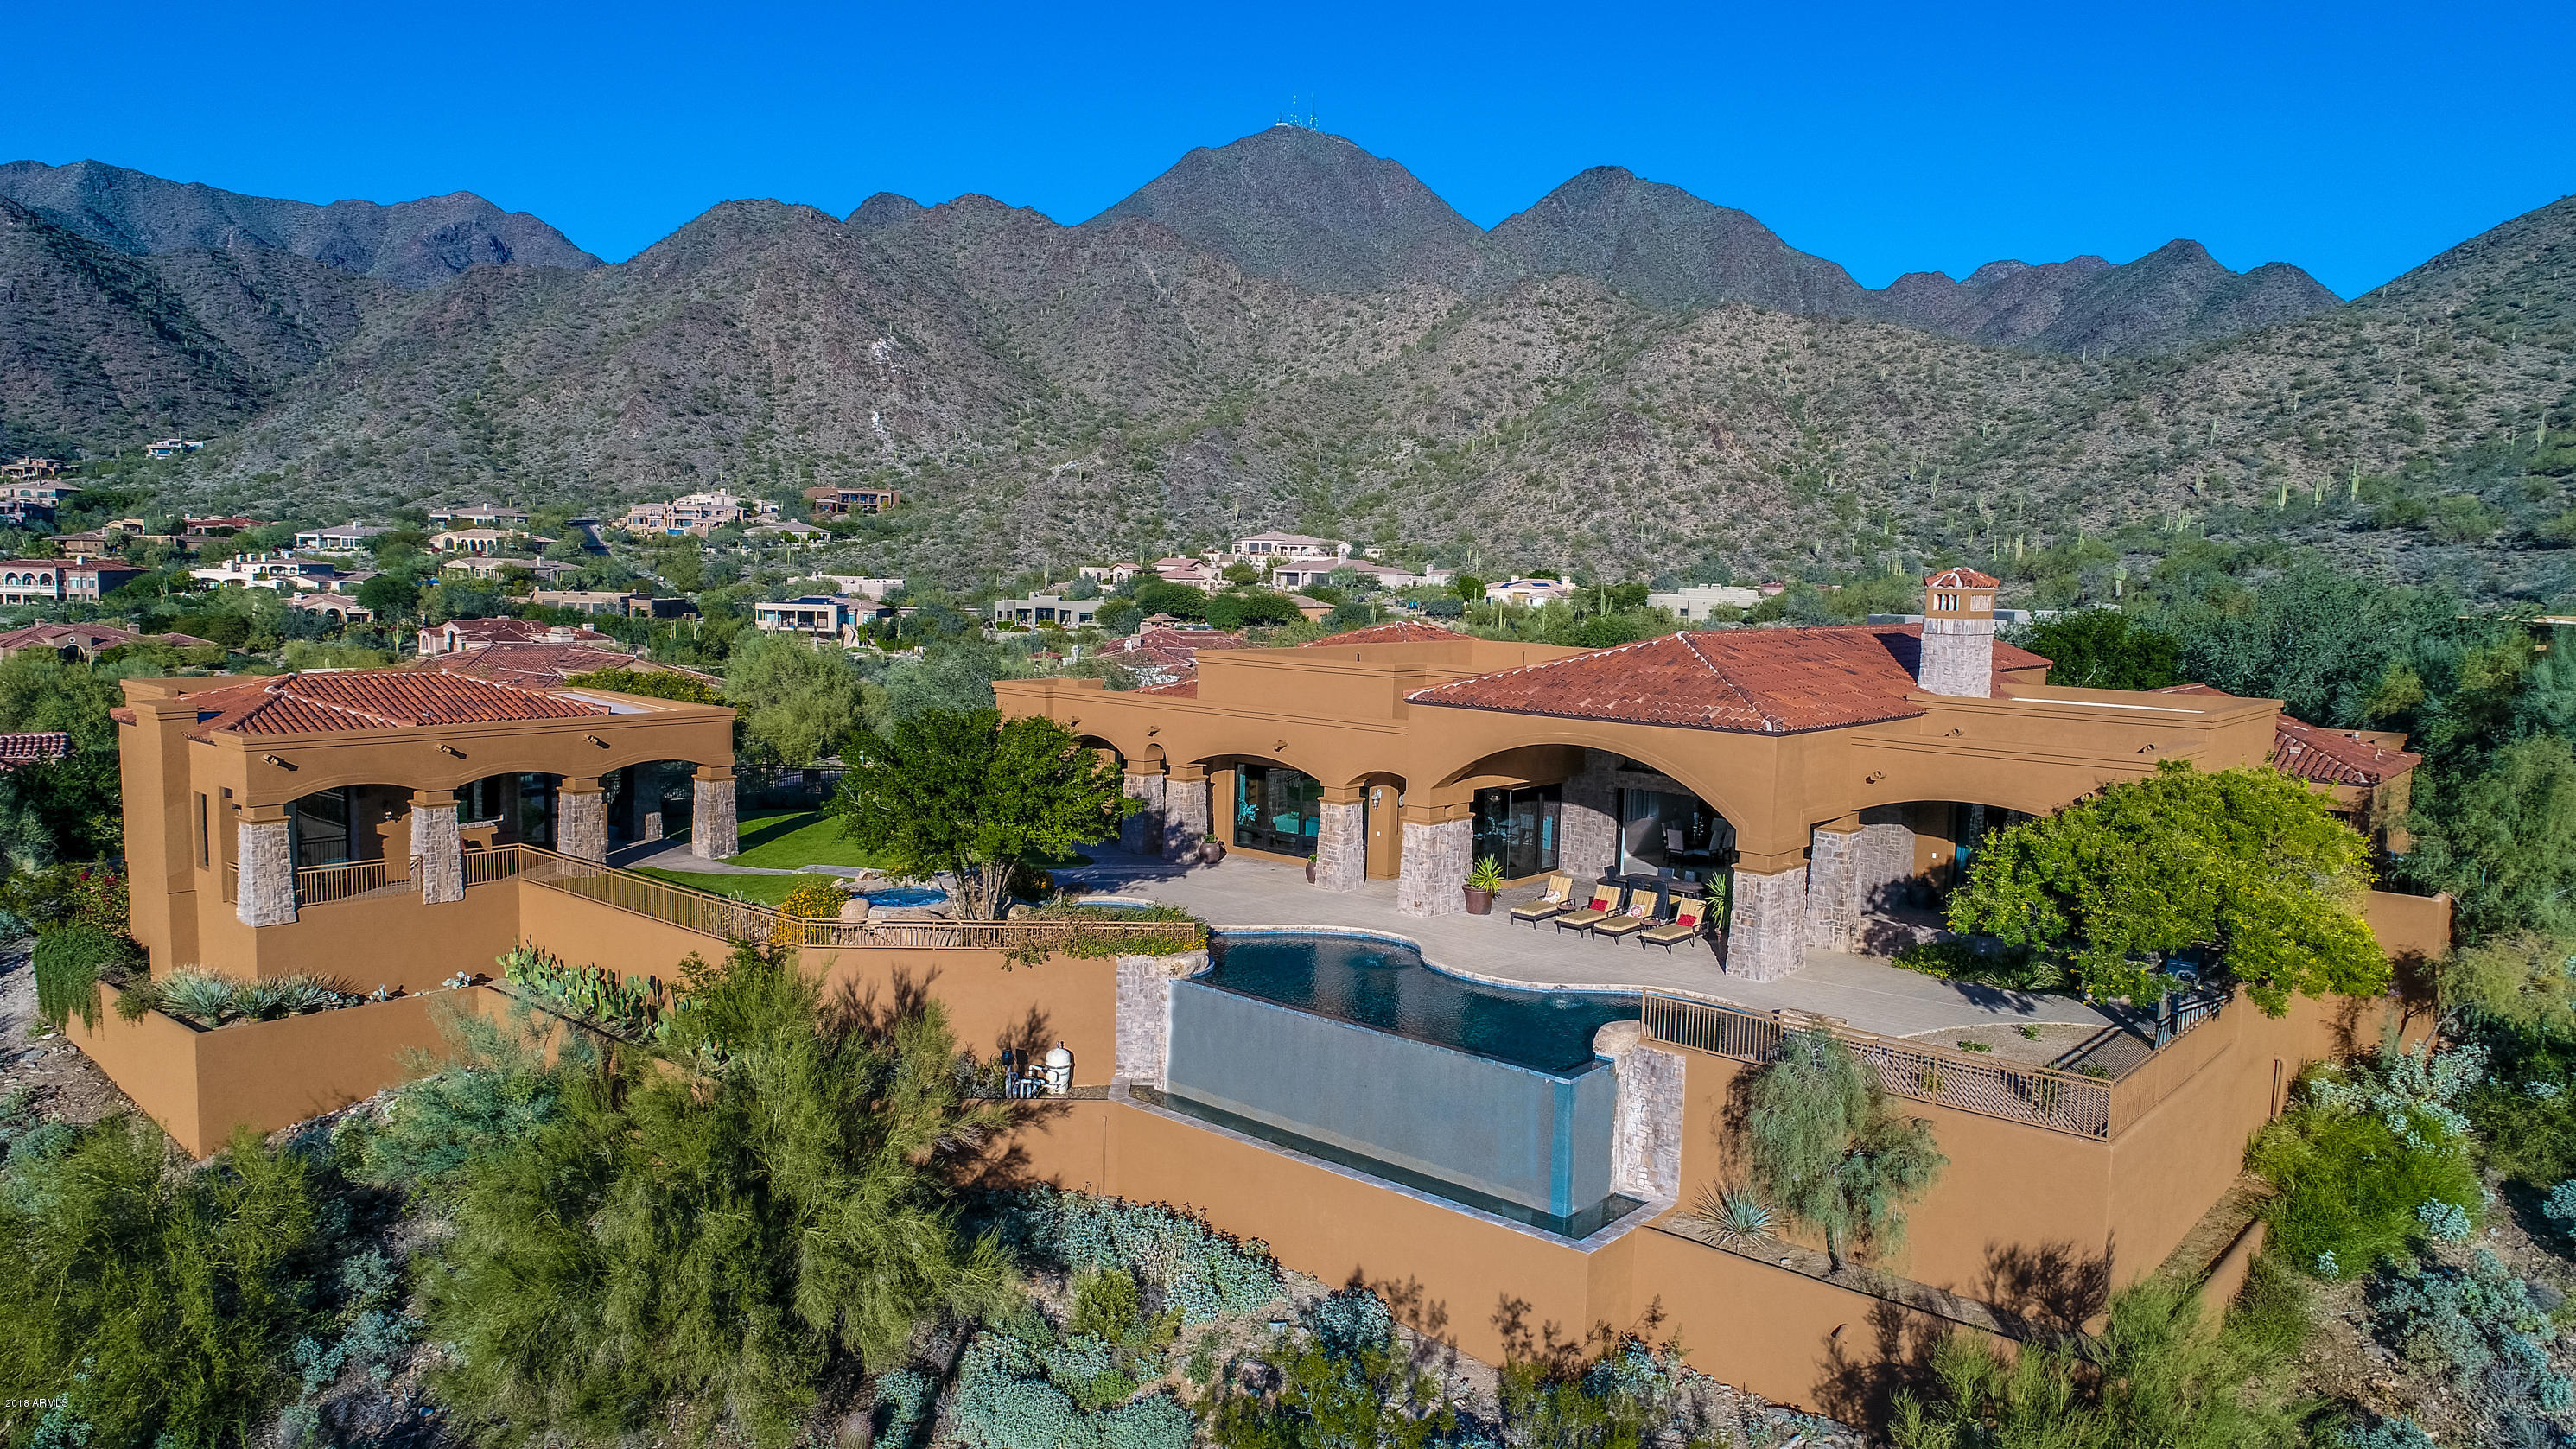 15721 115TH Way, Scottsdale, Arizona 85255, 5 Bedrooms Bedrooms, ,5.5 BathroomsBathrooms,Residential,For Sale,115TH,5845648